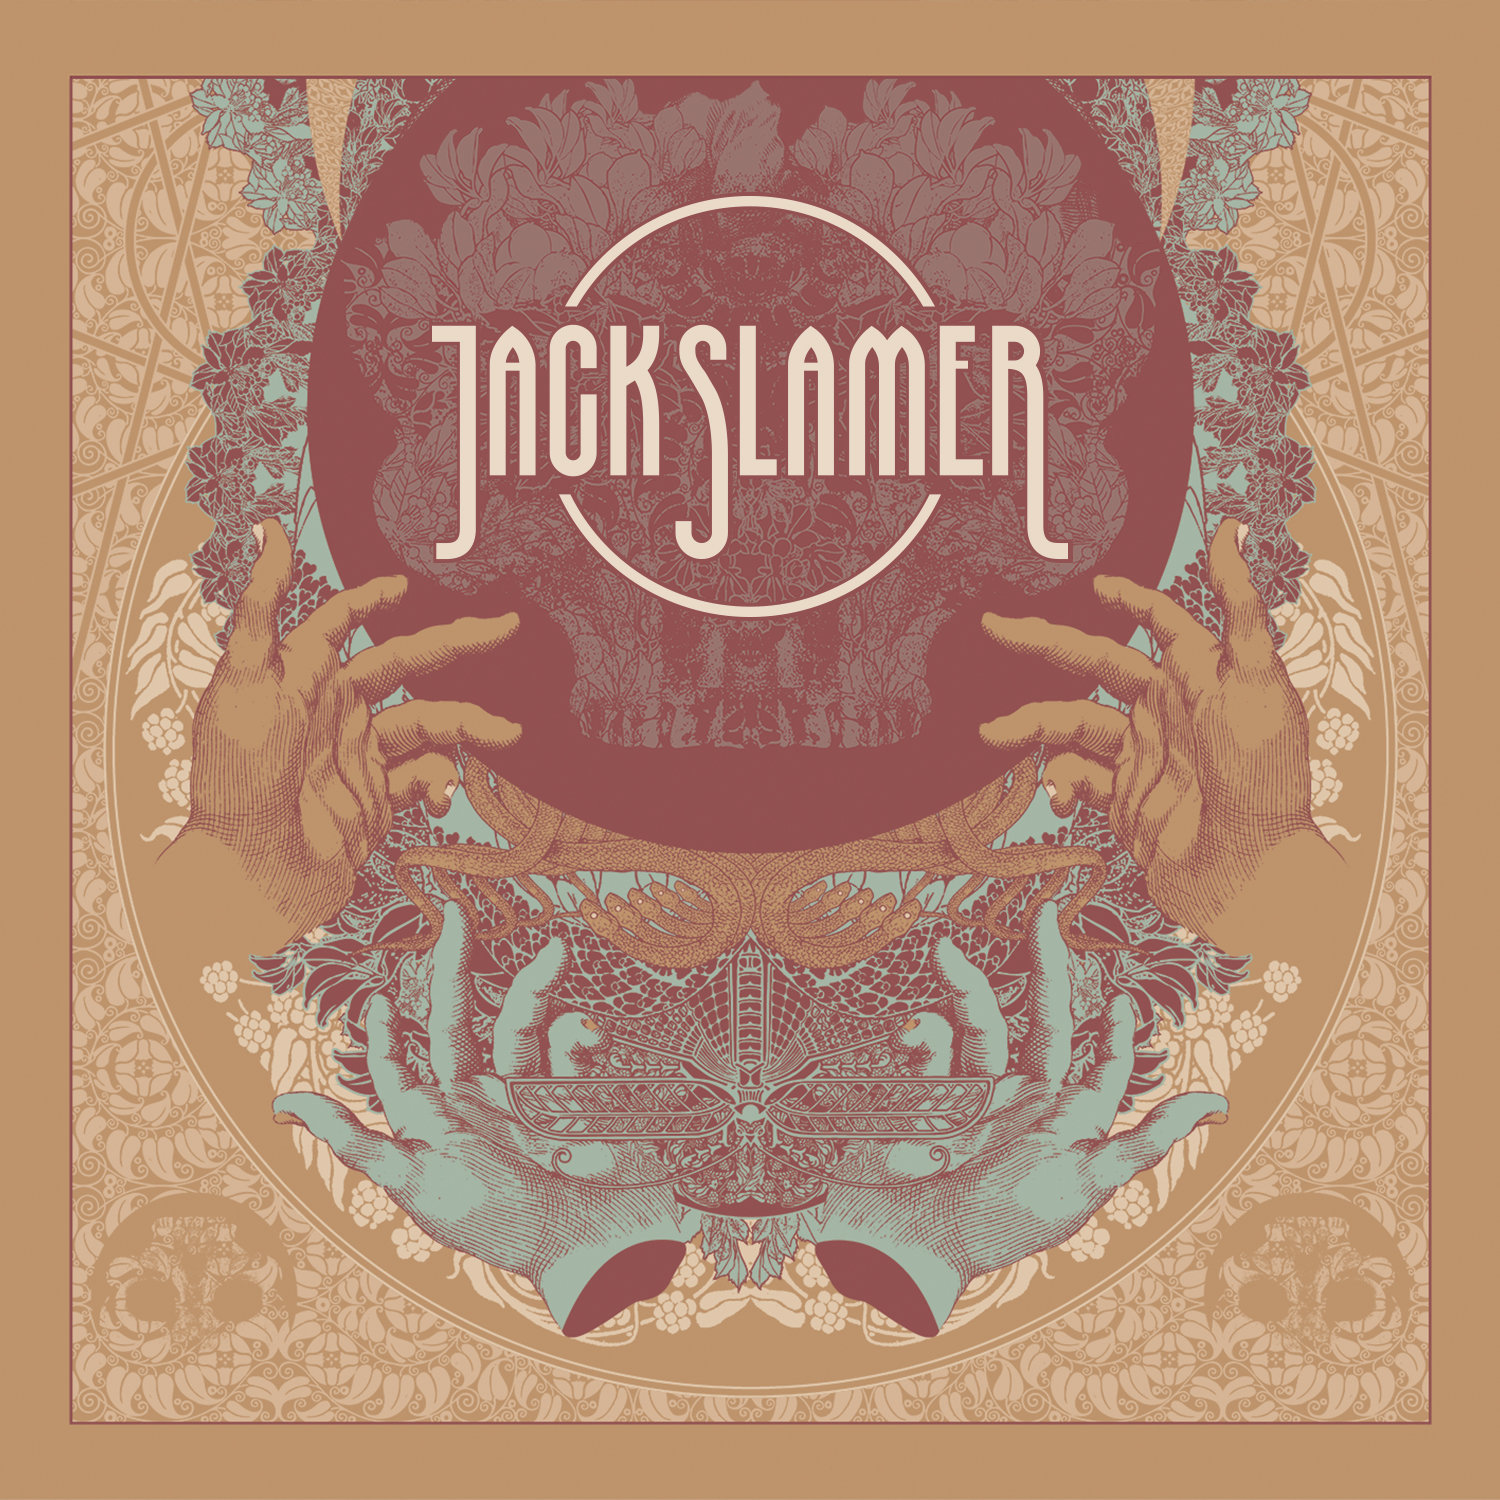 63c0c3b947 »Jack Slamer« tracklist 01. Turn Down The Light 02. Entire Force 03. The  Wanted Man 04. The Truth Is Not A Headline 05. Red Clouds 06. Biggest Mane